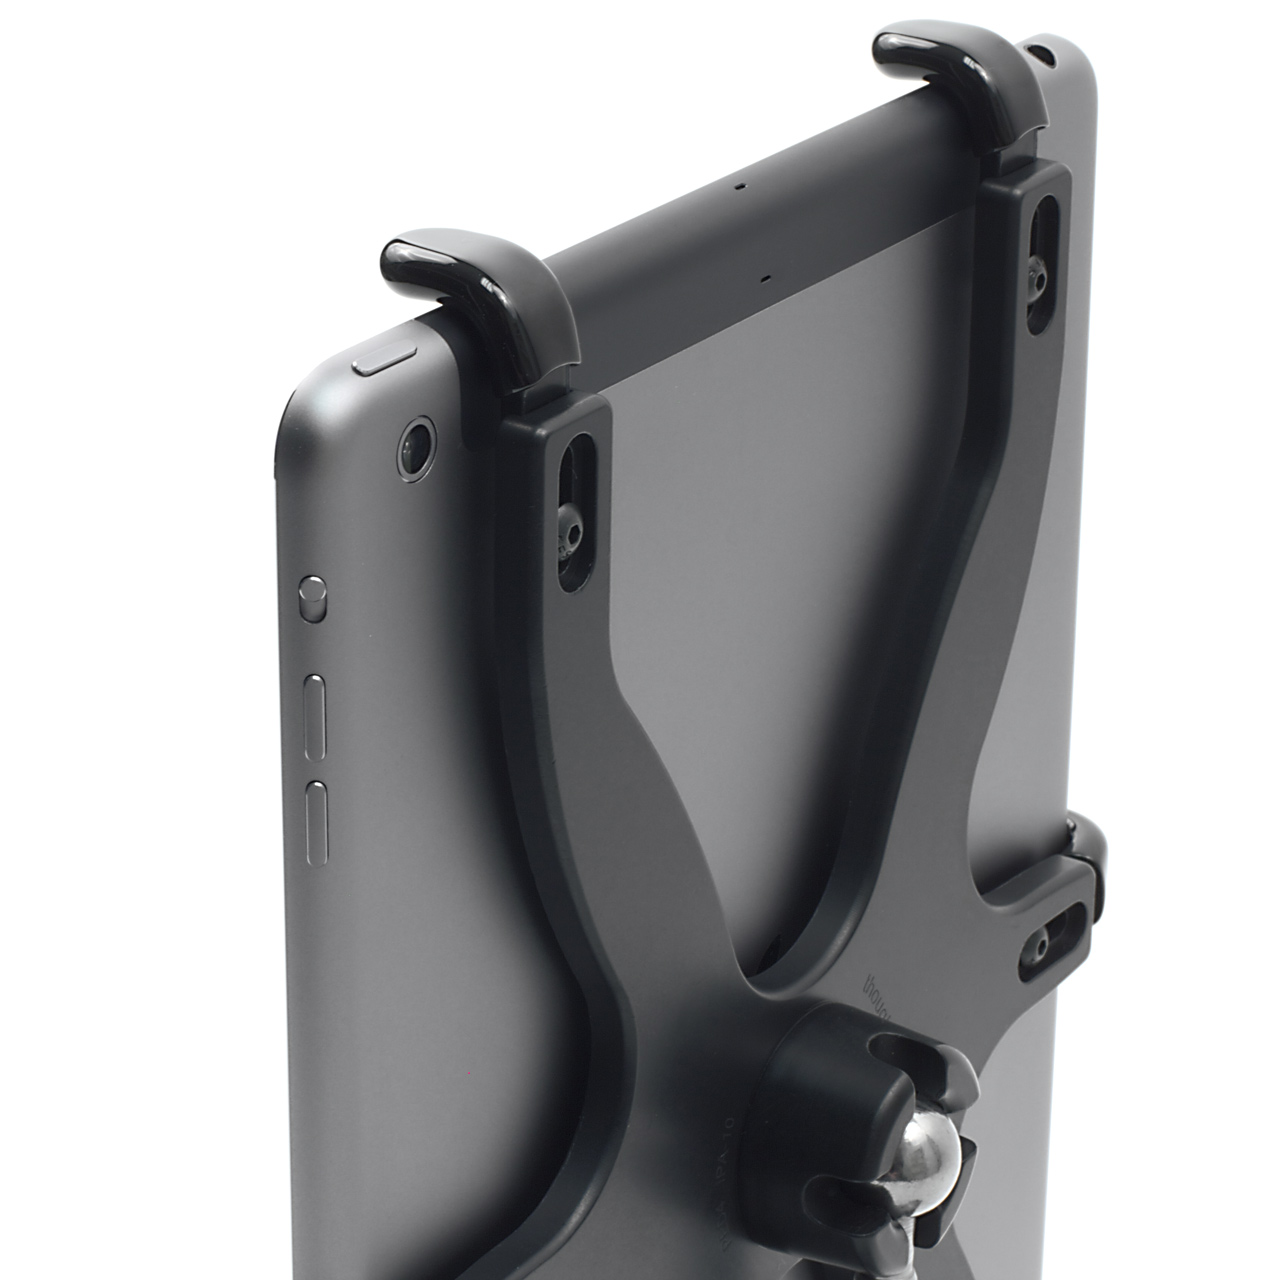 PED4 IPA10 iPad Pivoting Tripod Mount